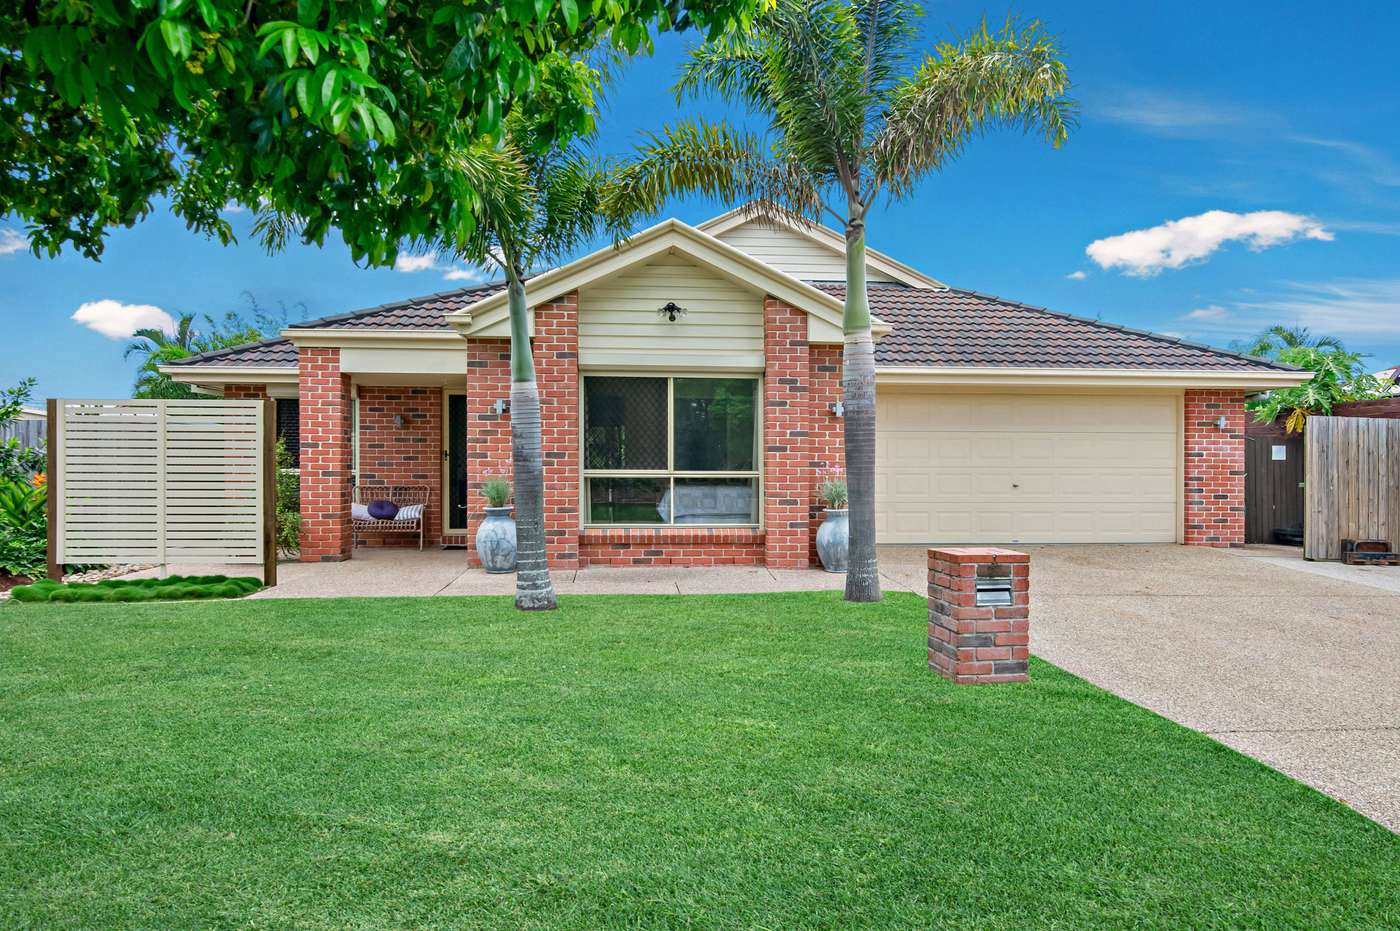 Main view of Homely house listing, 27 Castlereagh Street, Murrumba Downs, QLD 4503